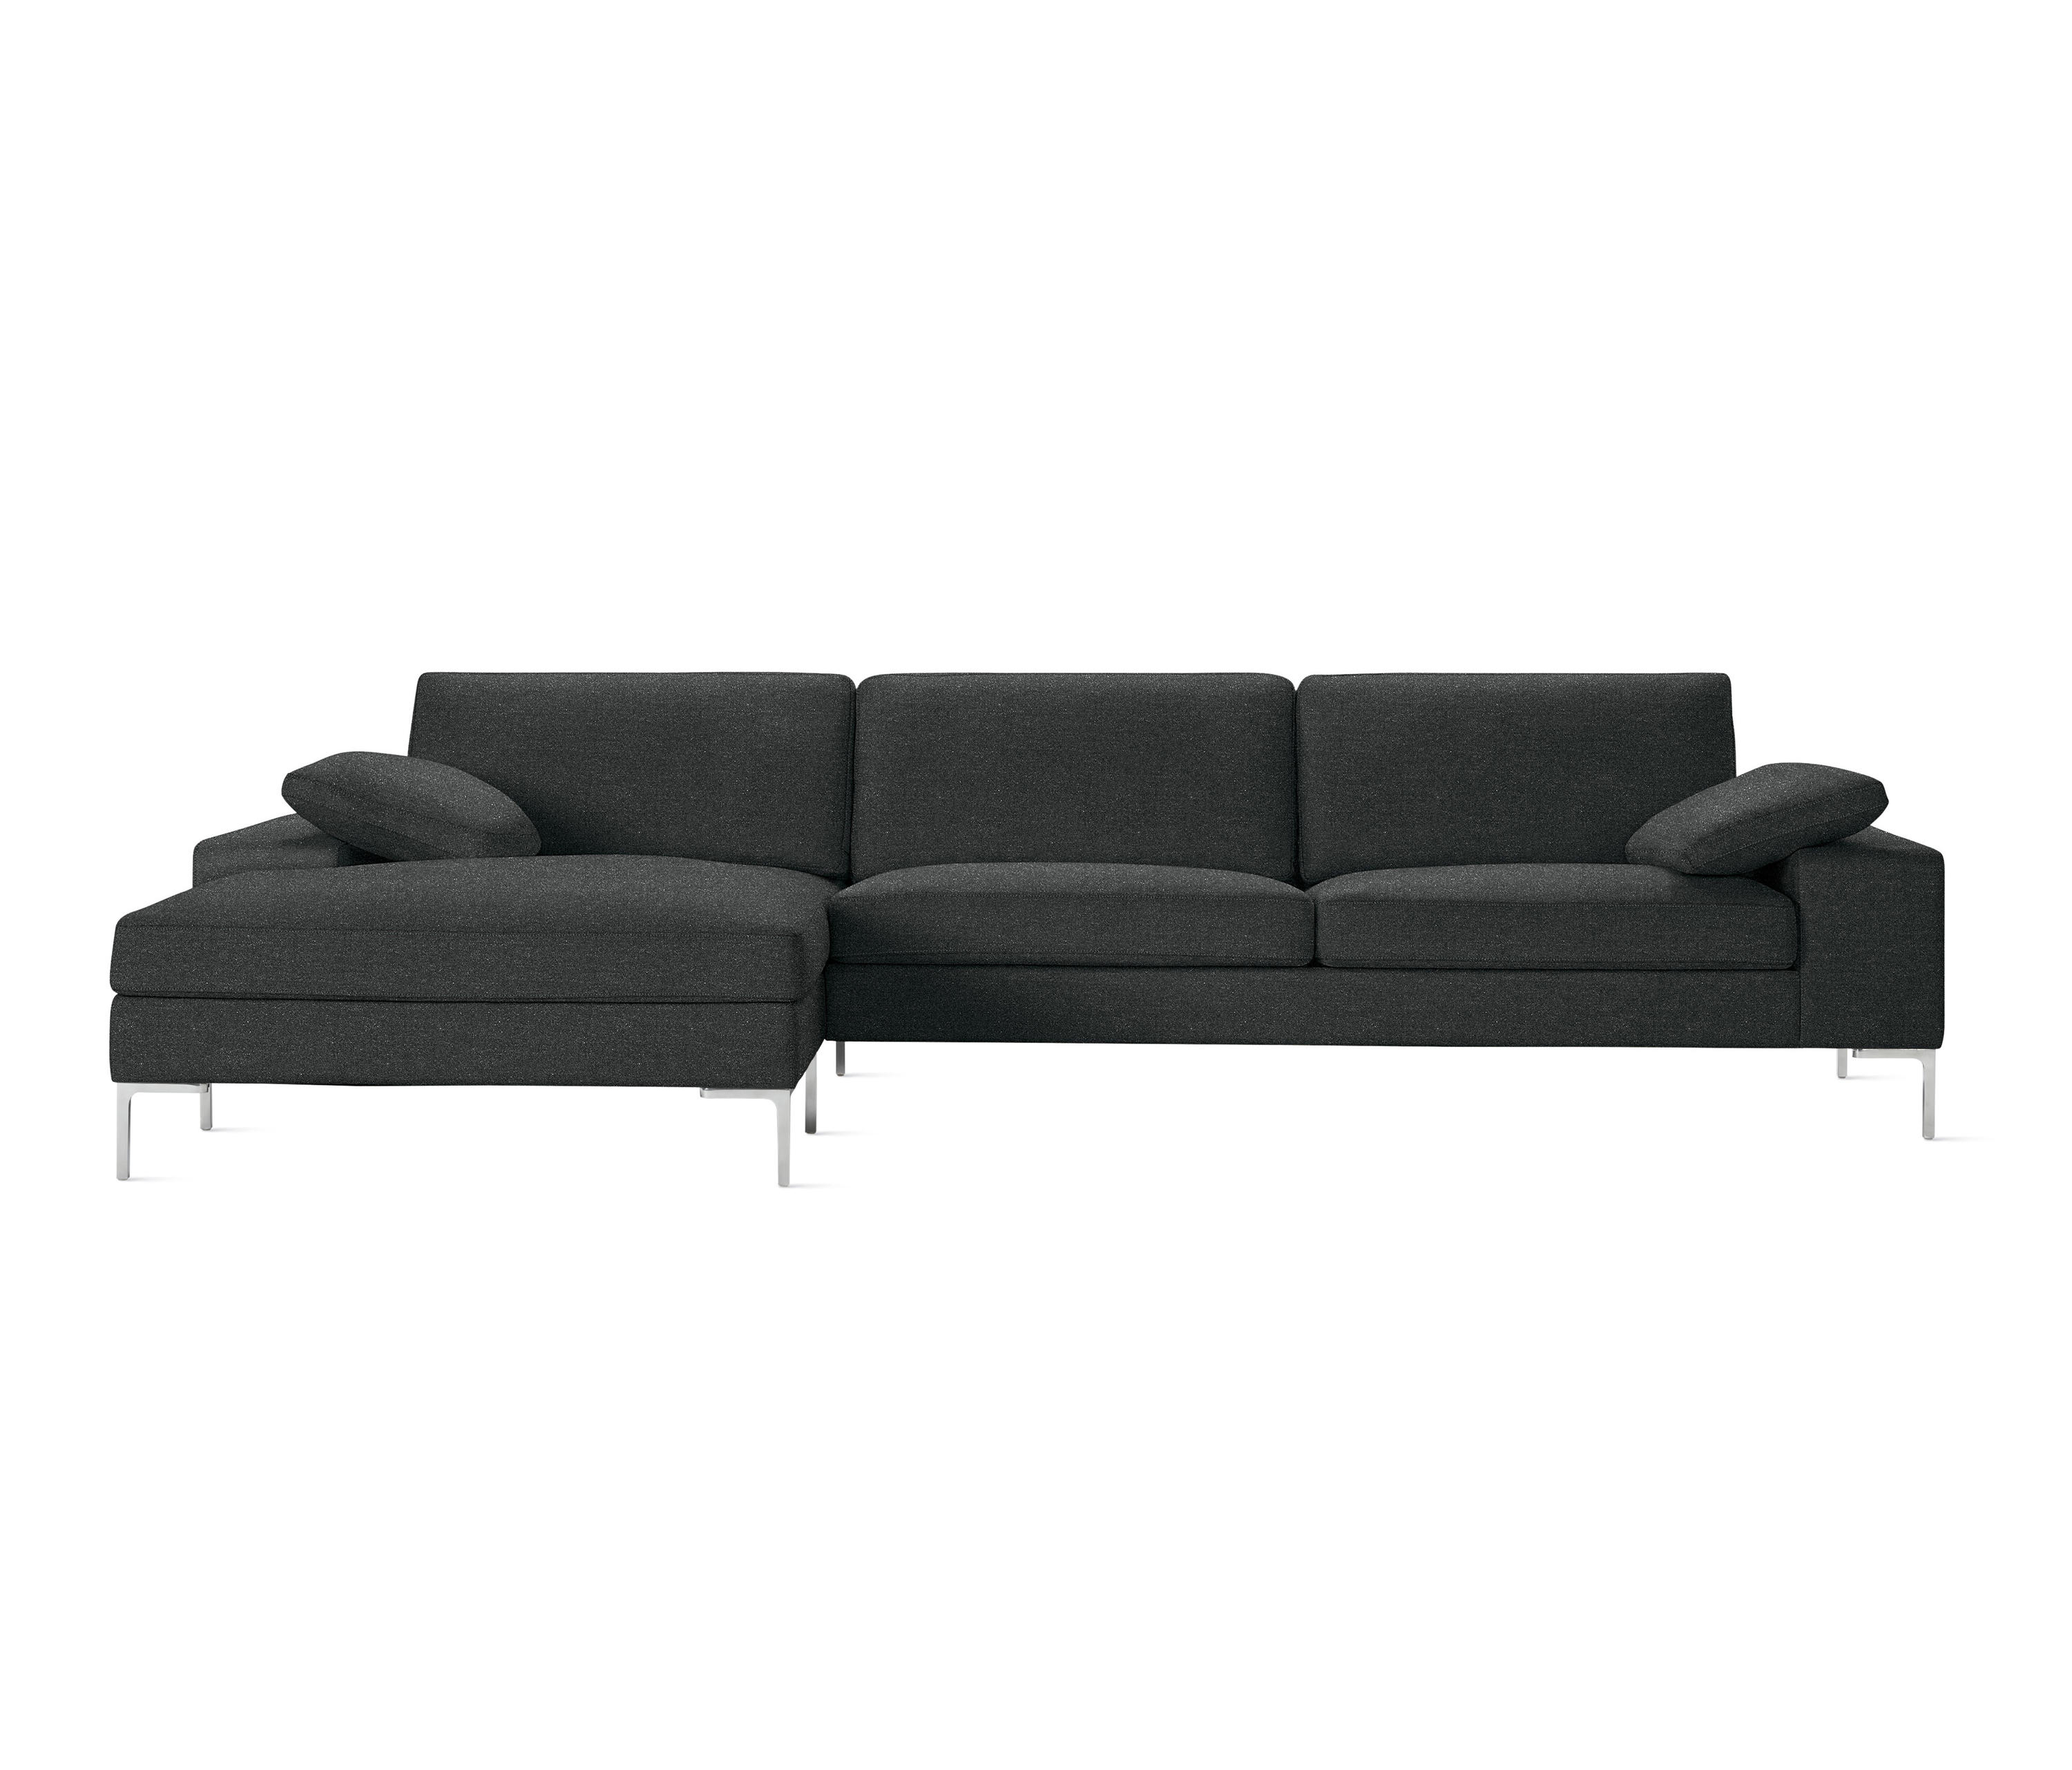 Arena Sectional With Chaise By Design Within Reach Sofas